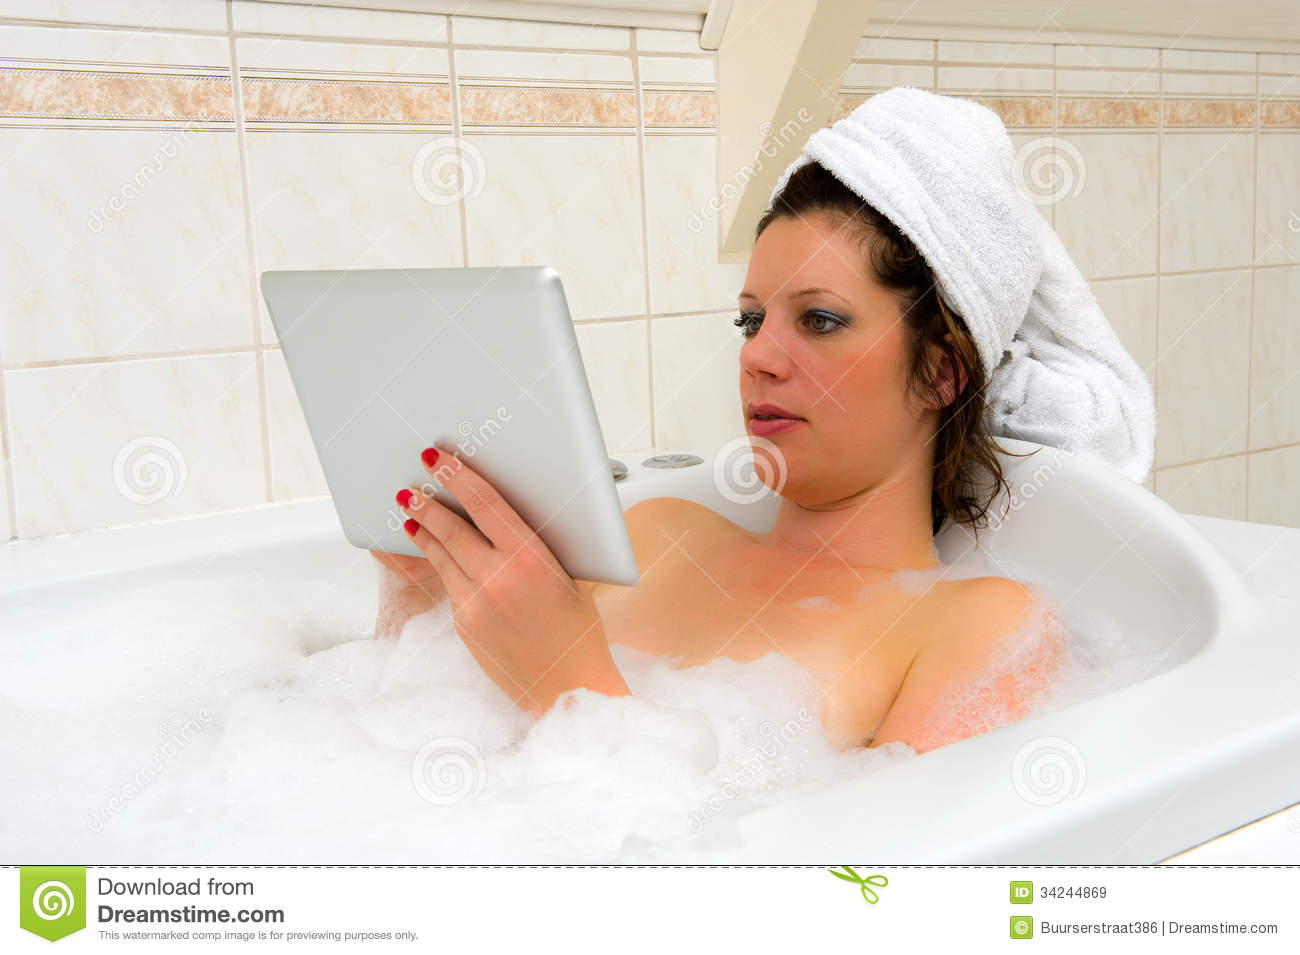 With ipad in bath royalty free stock images image 34244869 for Hot bathroom